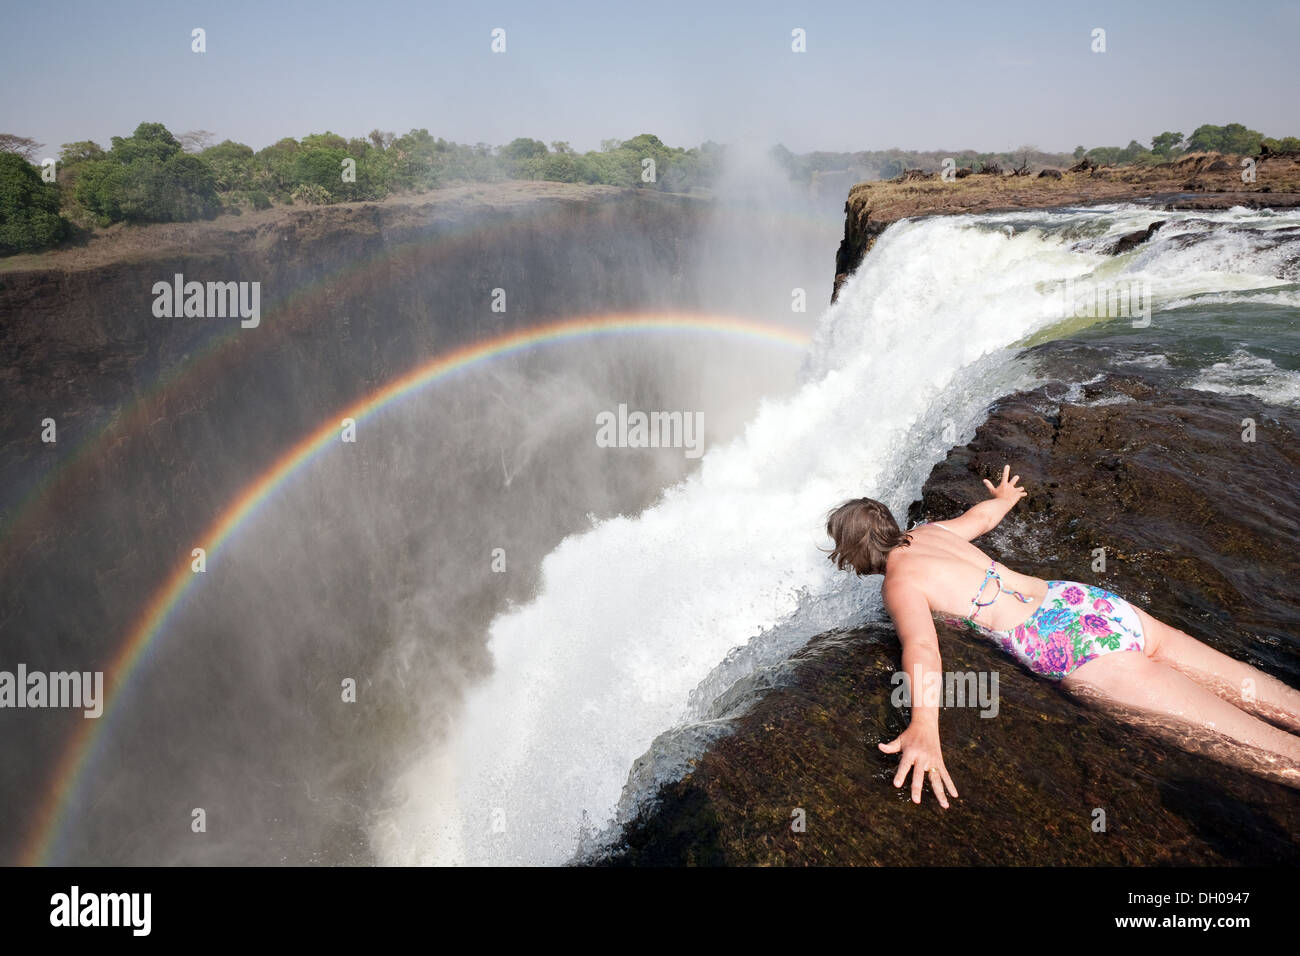 Middle Aged Caucasian Woman Looking Over The Edge Of Victoria Falls Stock Photo 62087431 Alamy